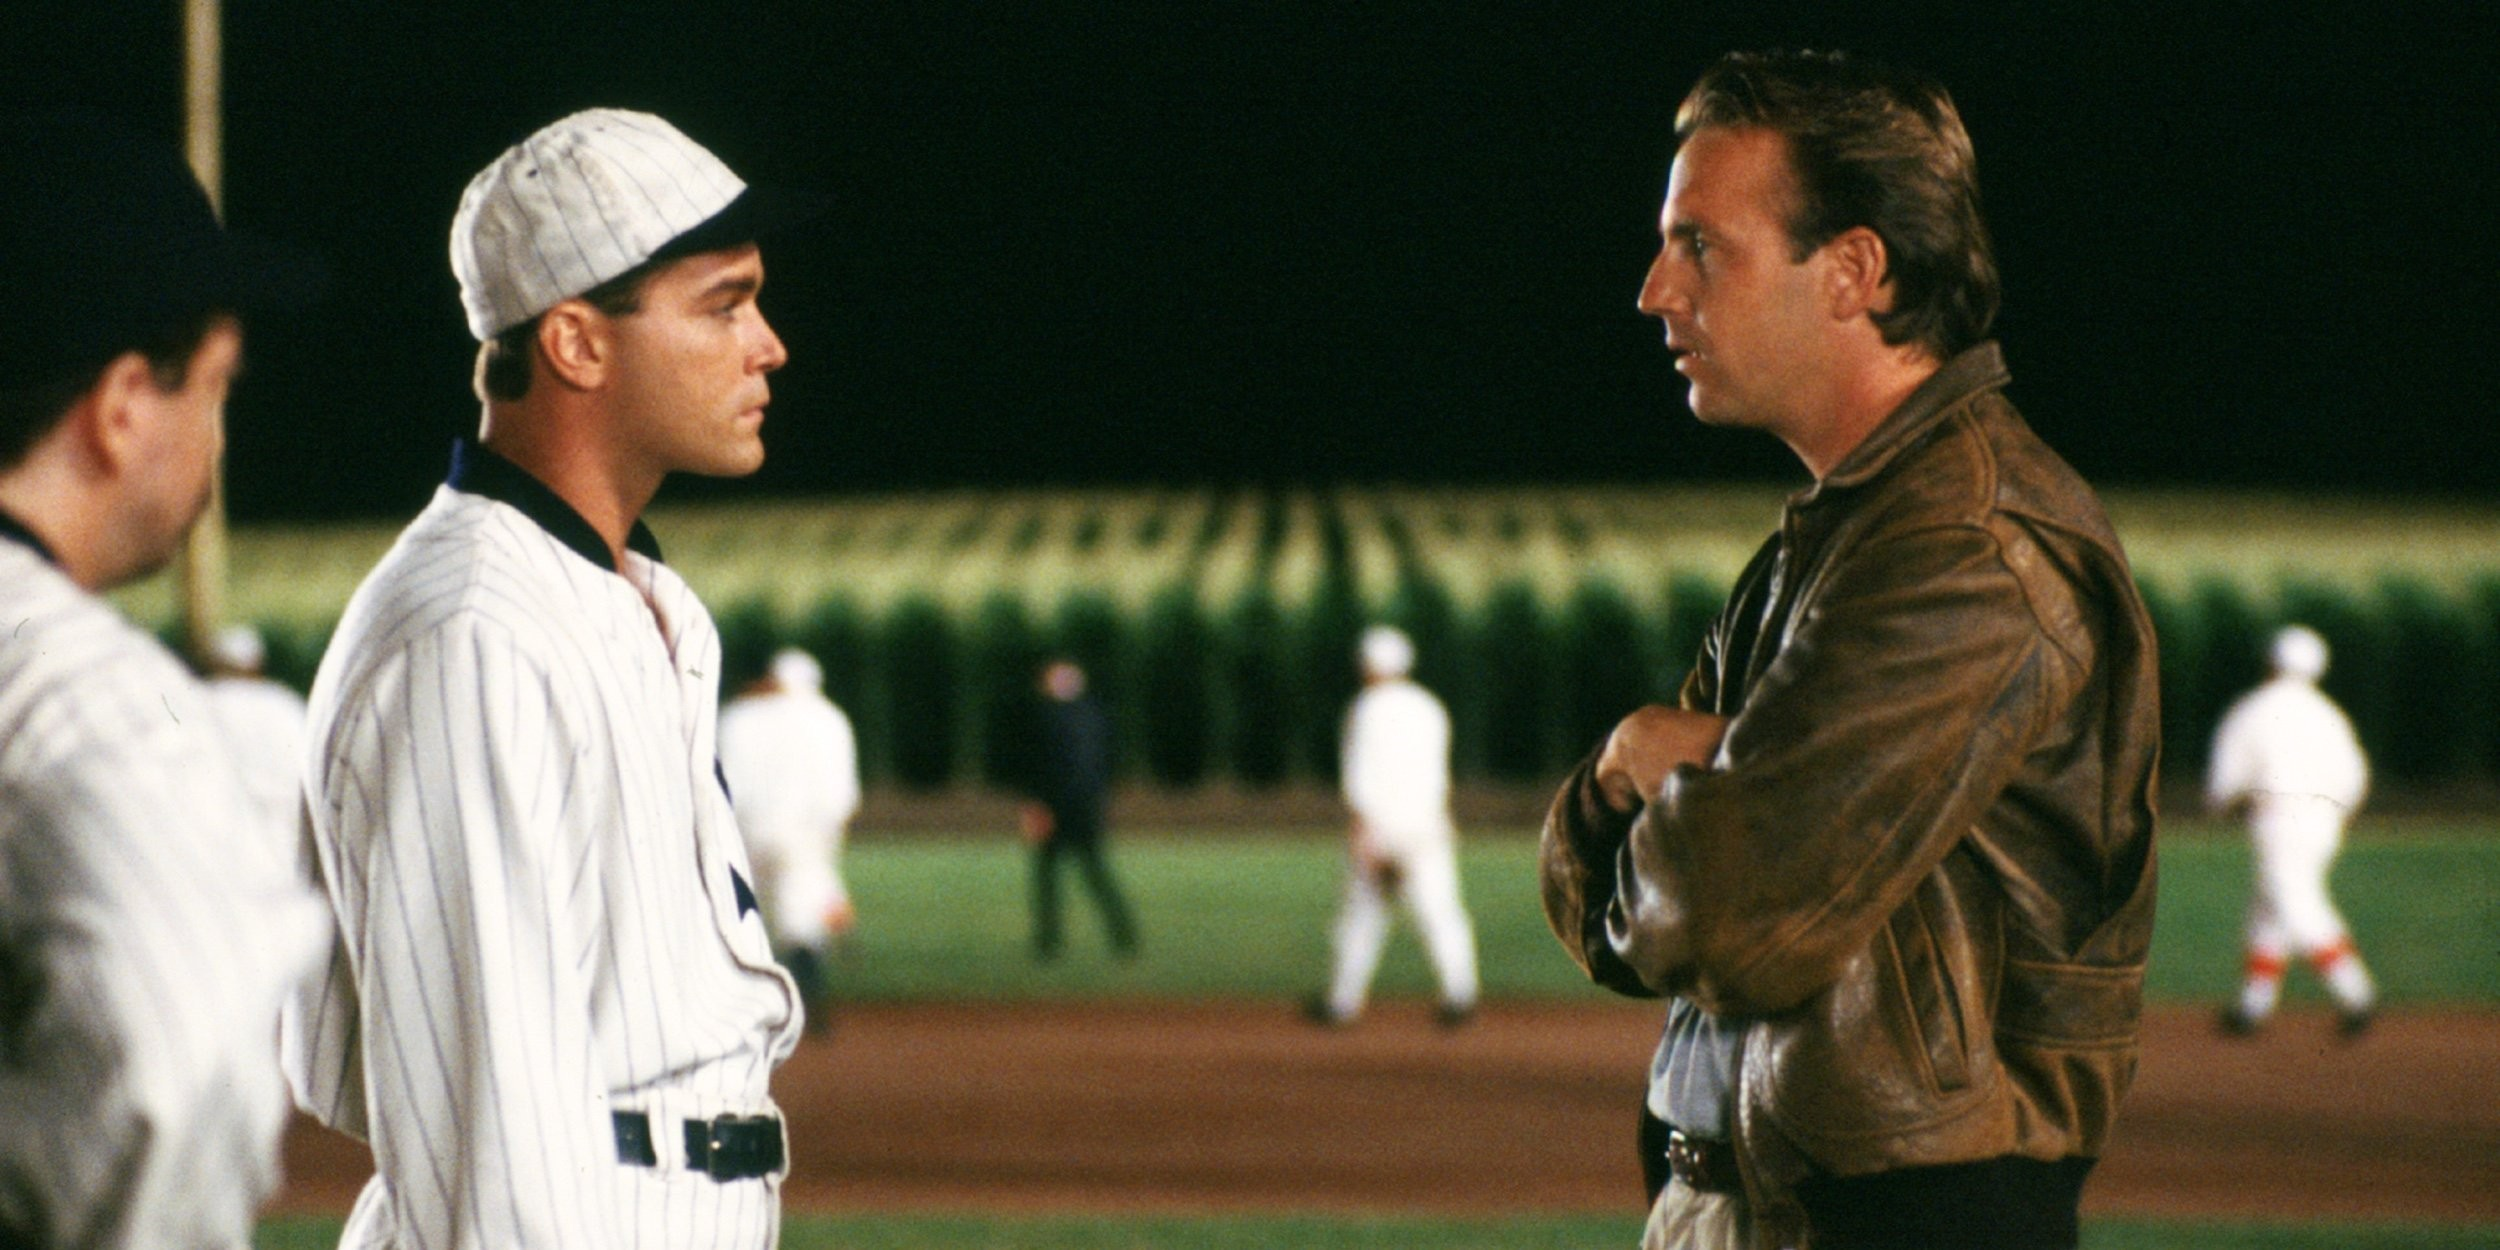 Field of Dreams site to host first ever MLB game in Lowa